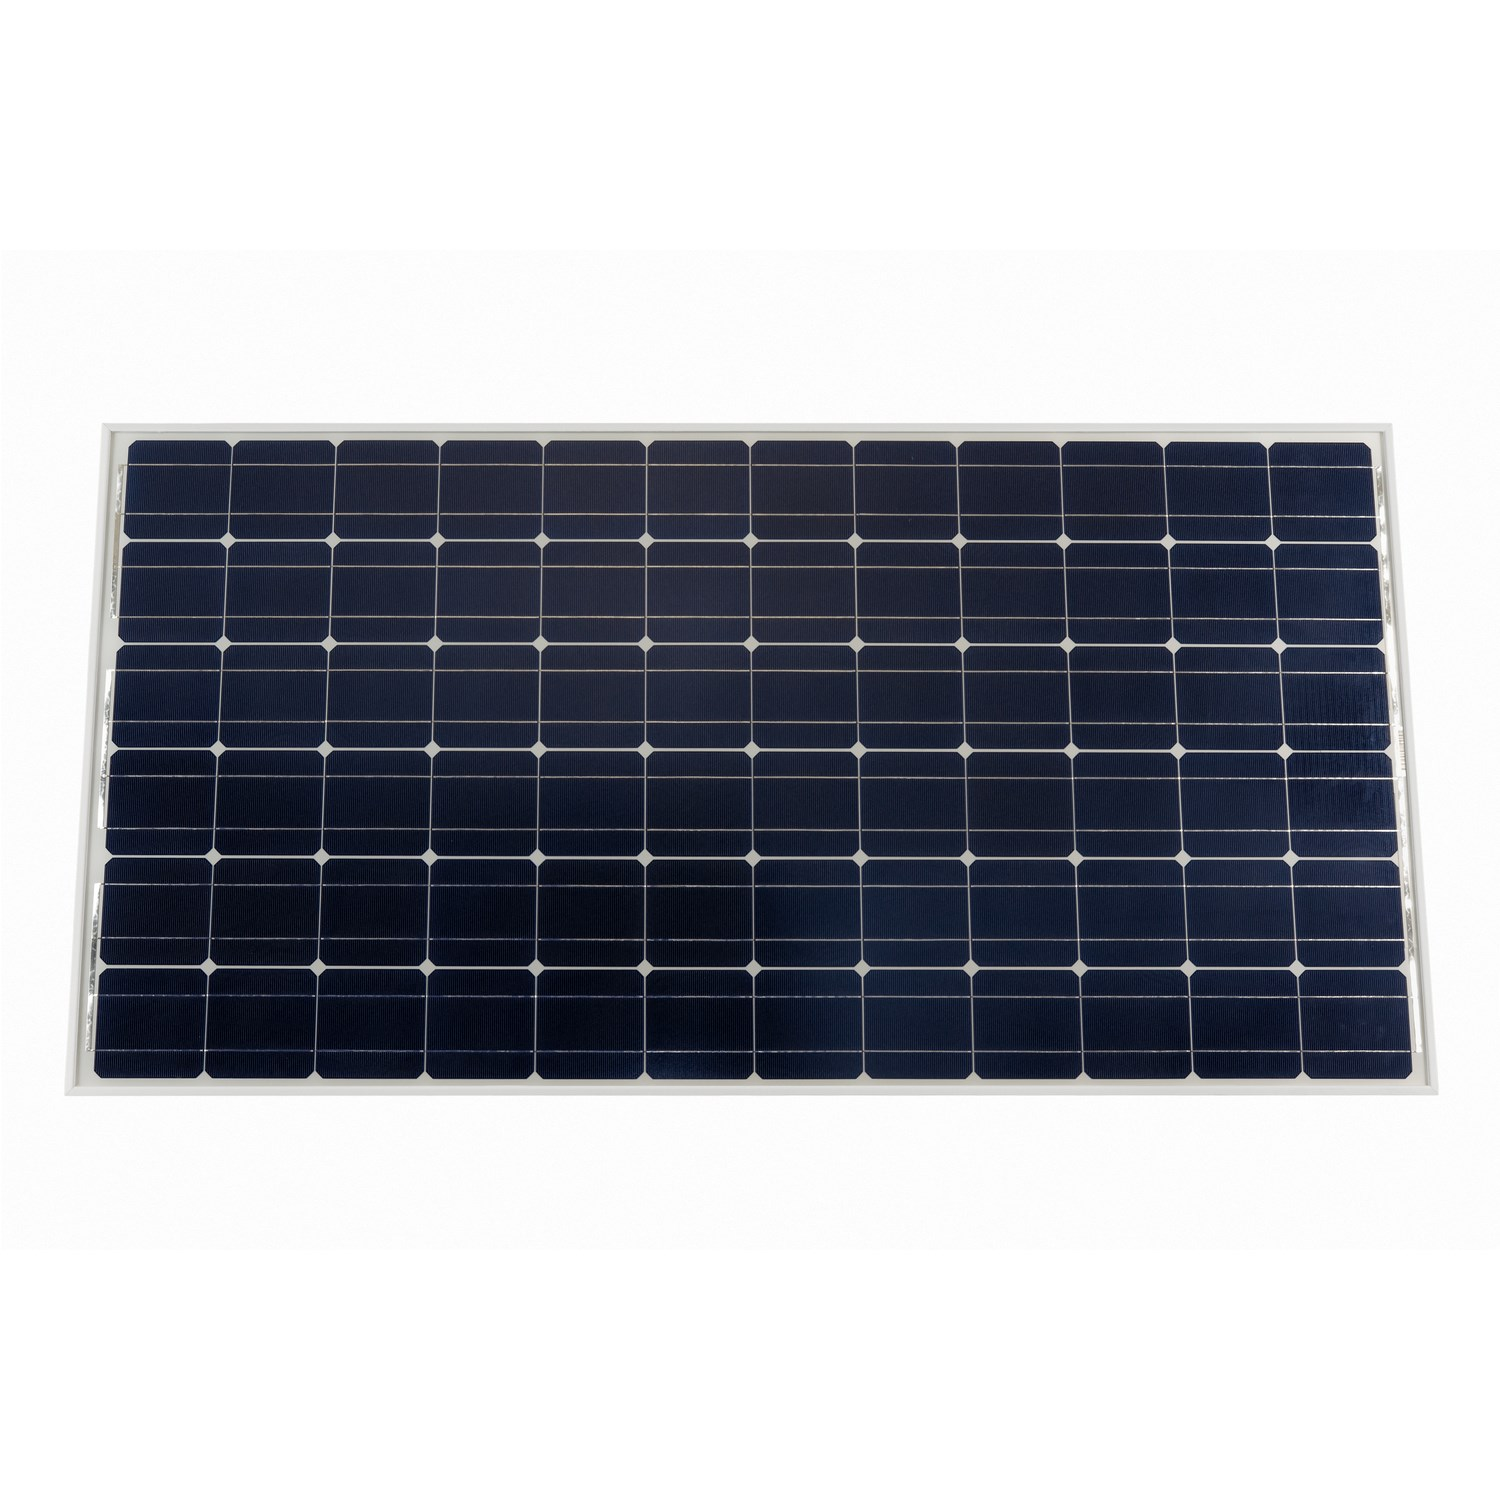 Victron Solar Panel 175W-12V Mono 1485x668x30mm series 4a